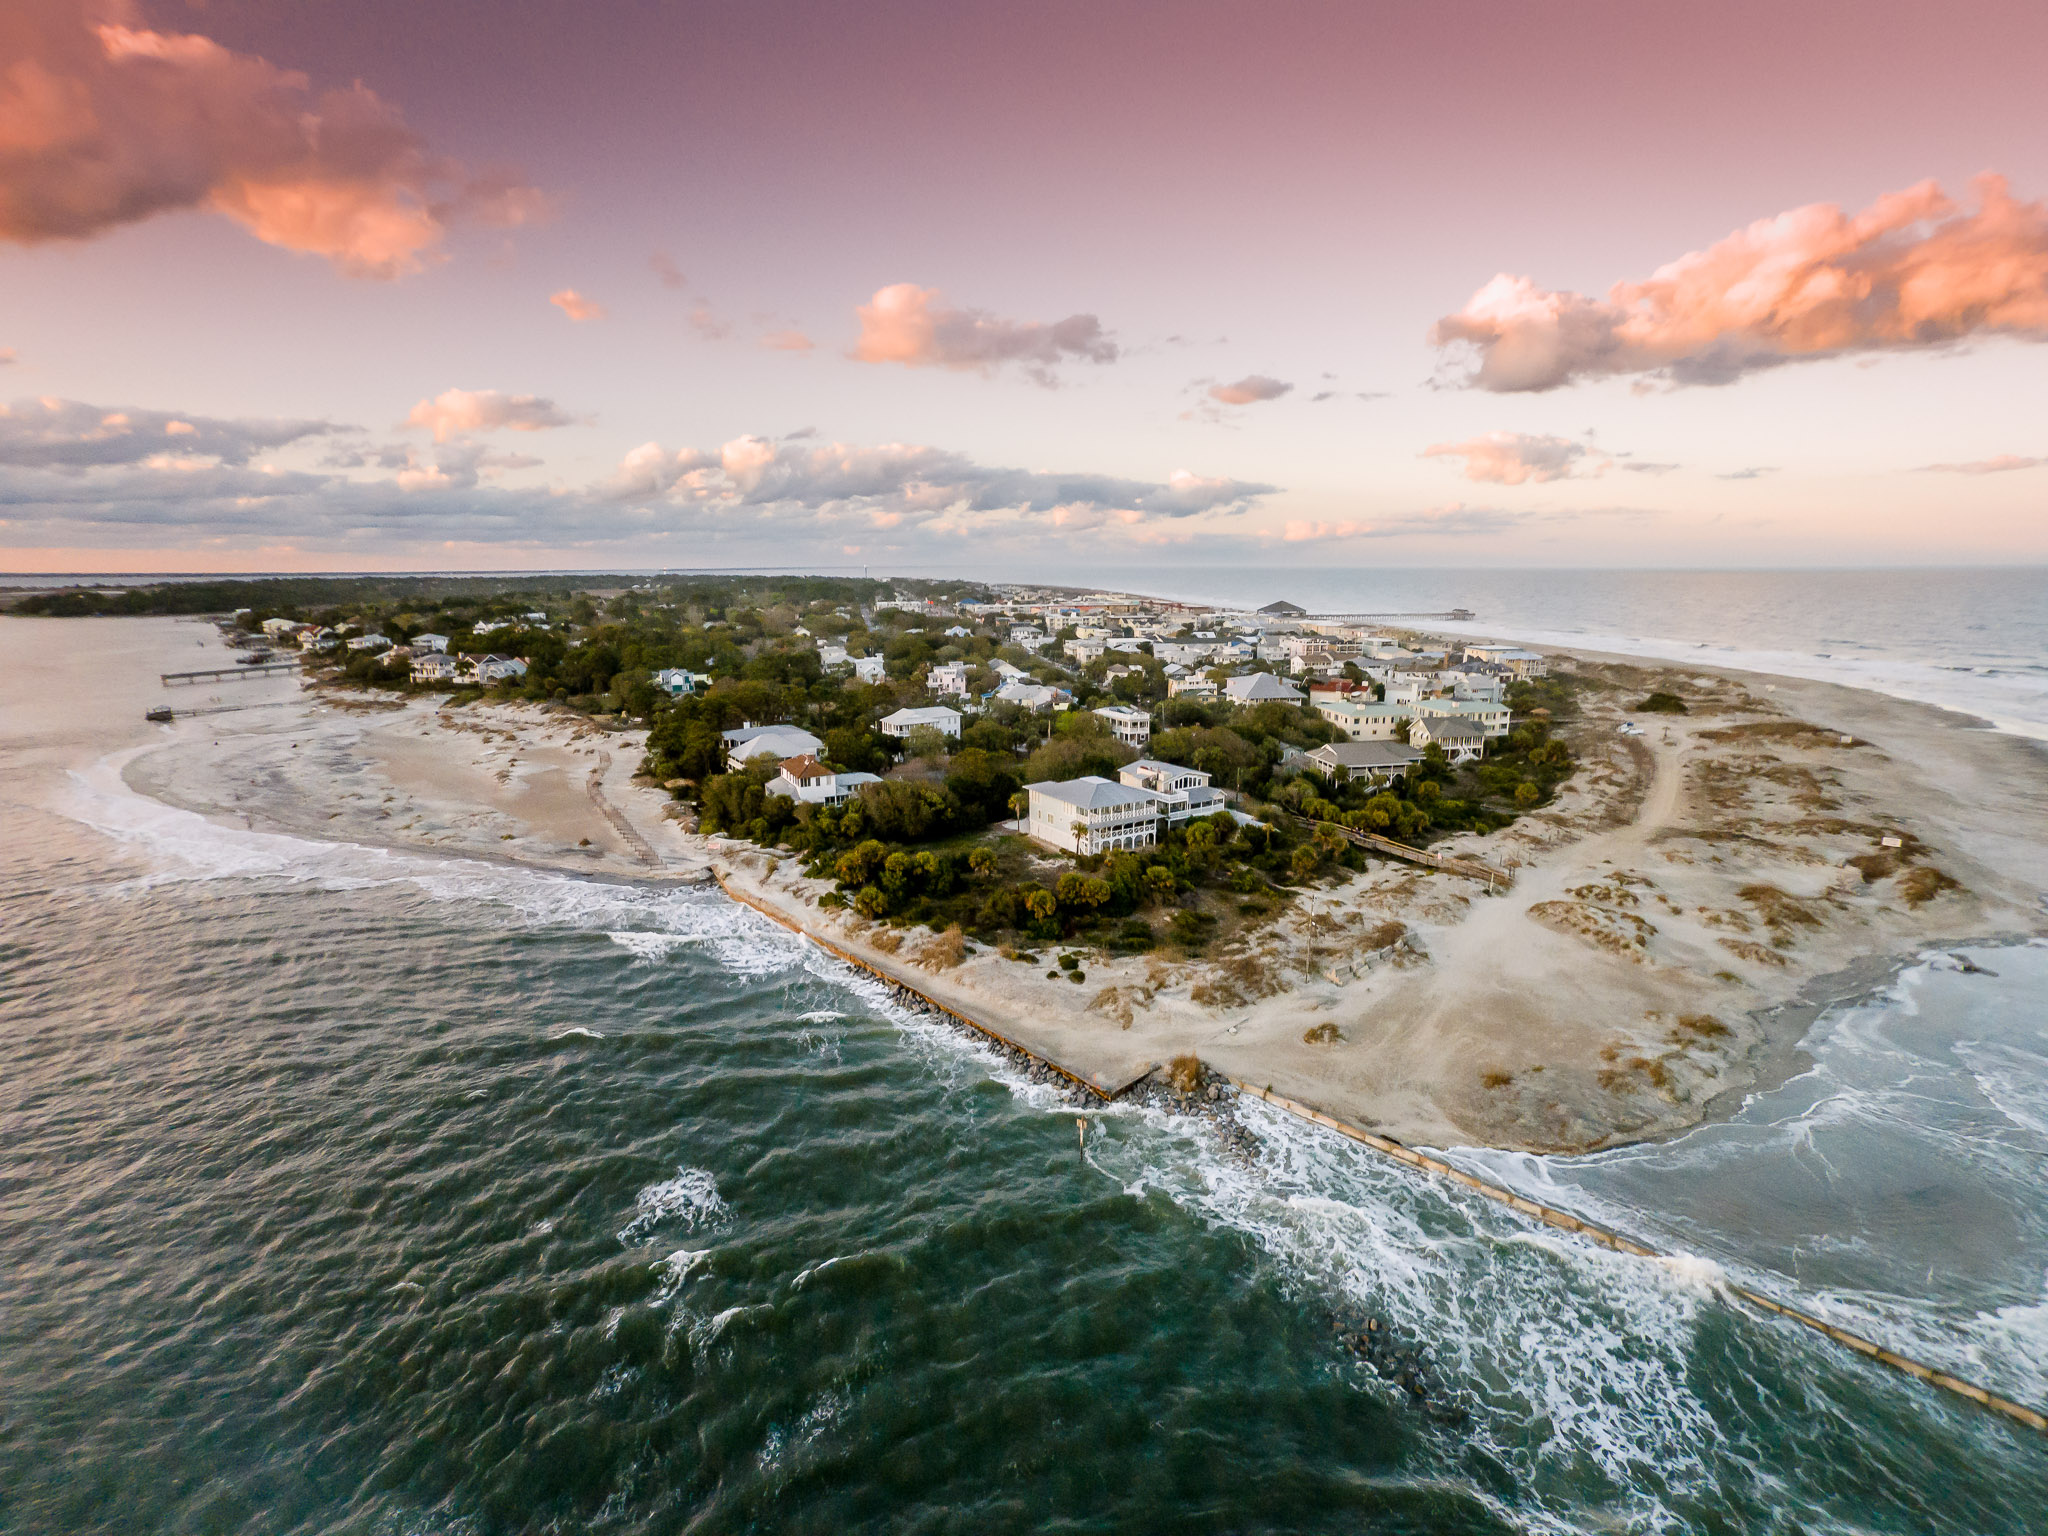 tybee island single men over 50 Buy tybee island canvas prints designed by millions of independent artists from all over the world our tybee island canvas art is stretched on 15 inch thick stretcher bars and may be customized with your choice of black, white, or mirrored sides.